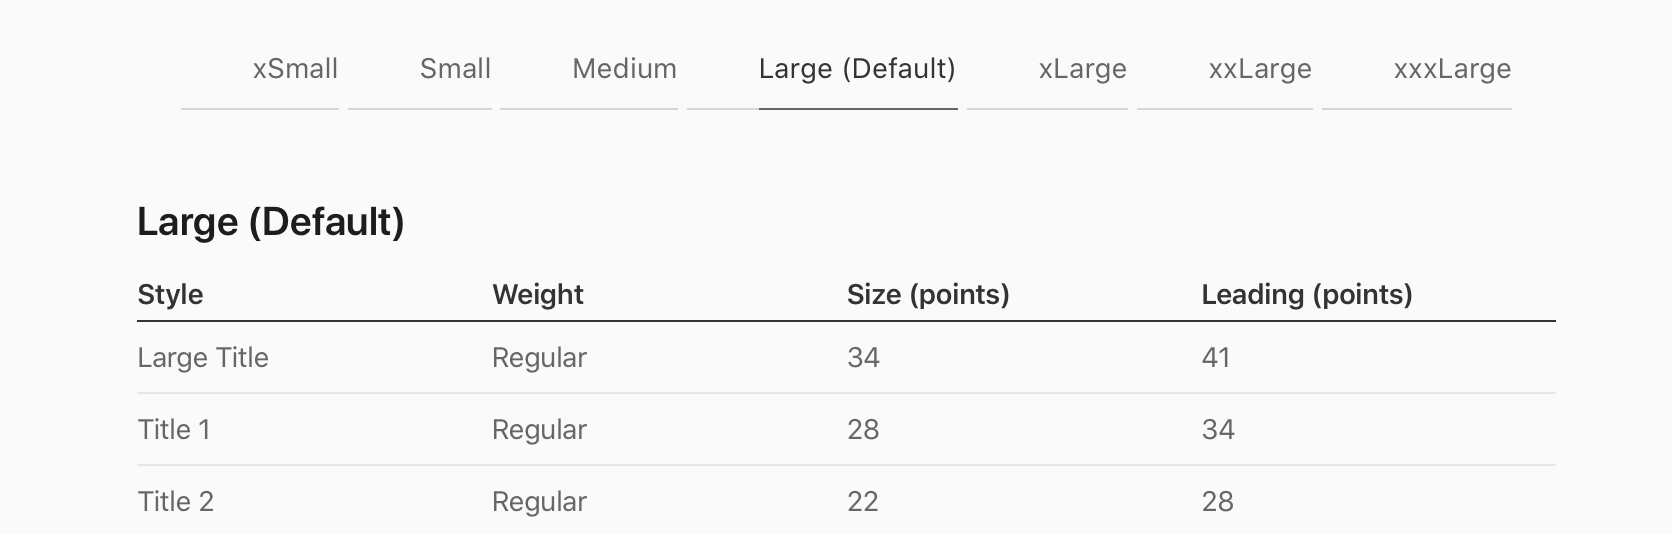 iOS Dynamic Type font sizes table